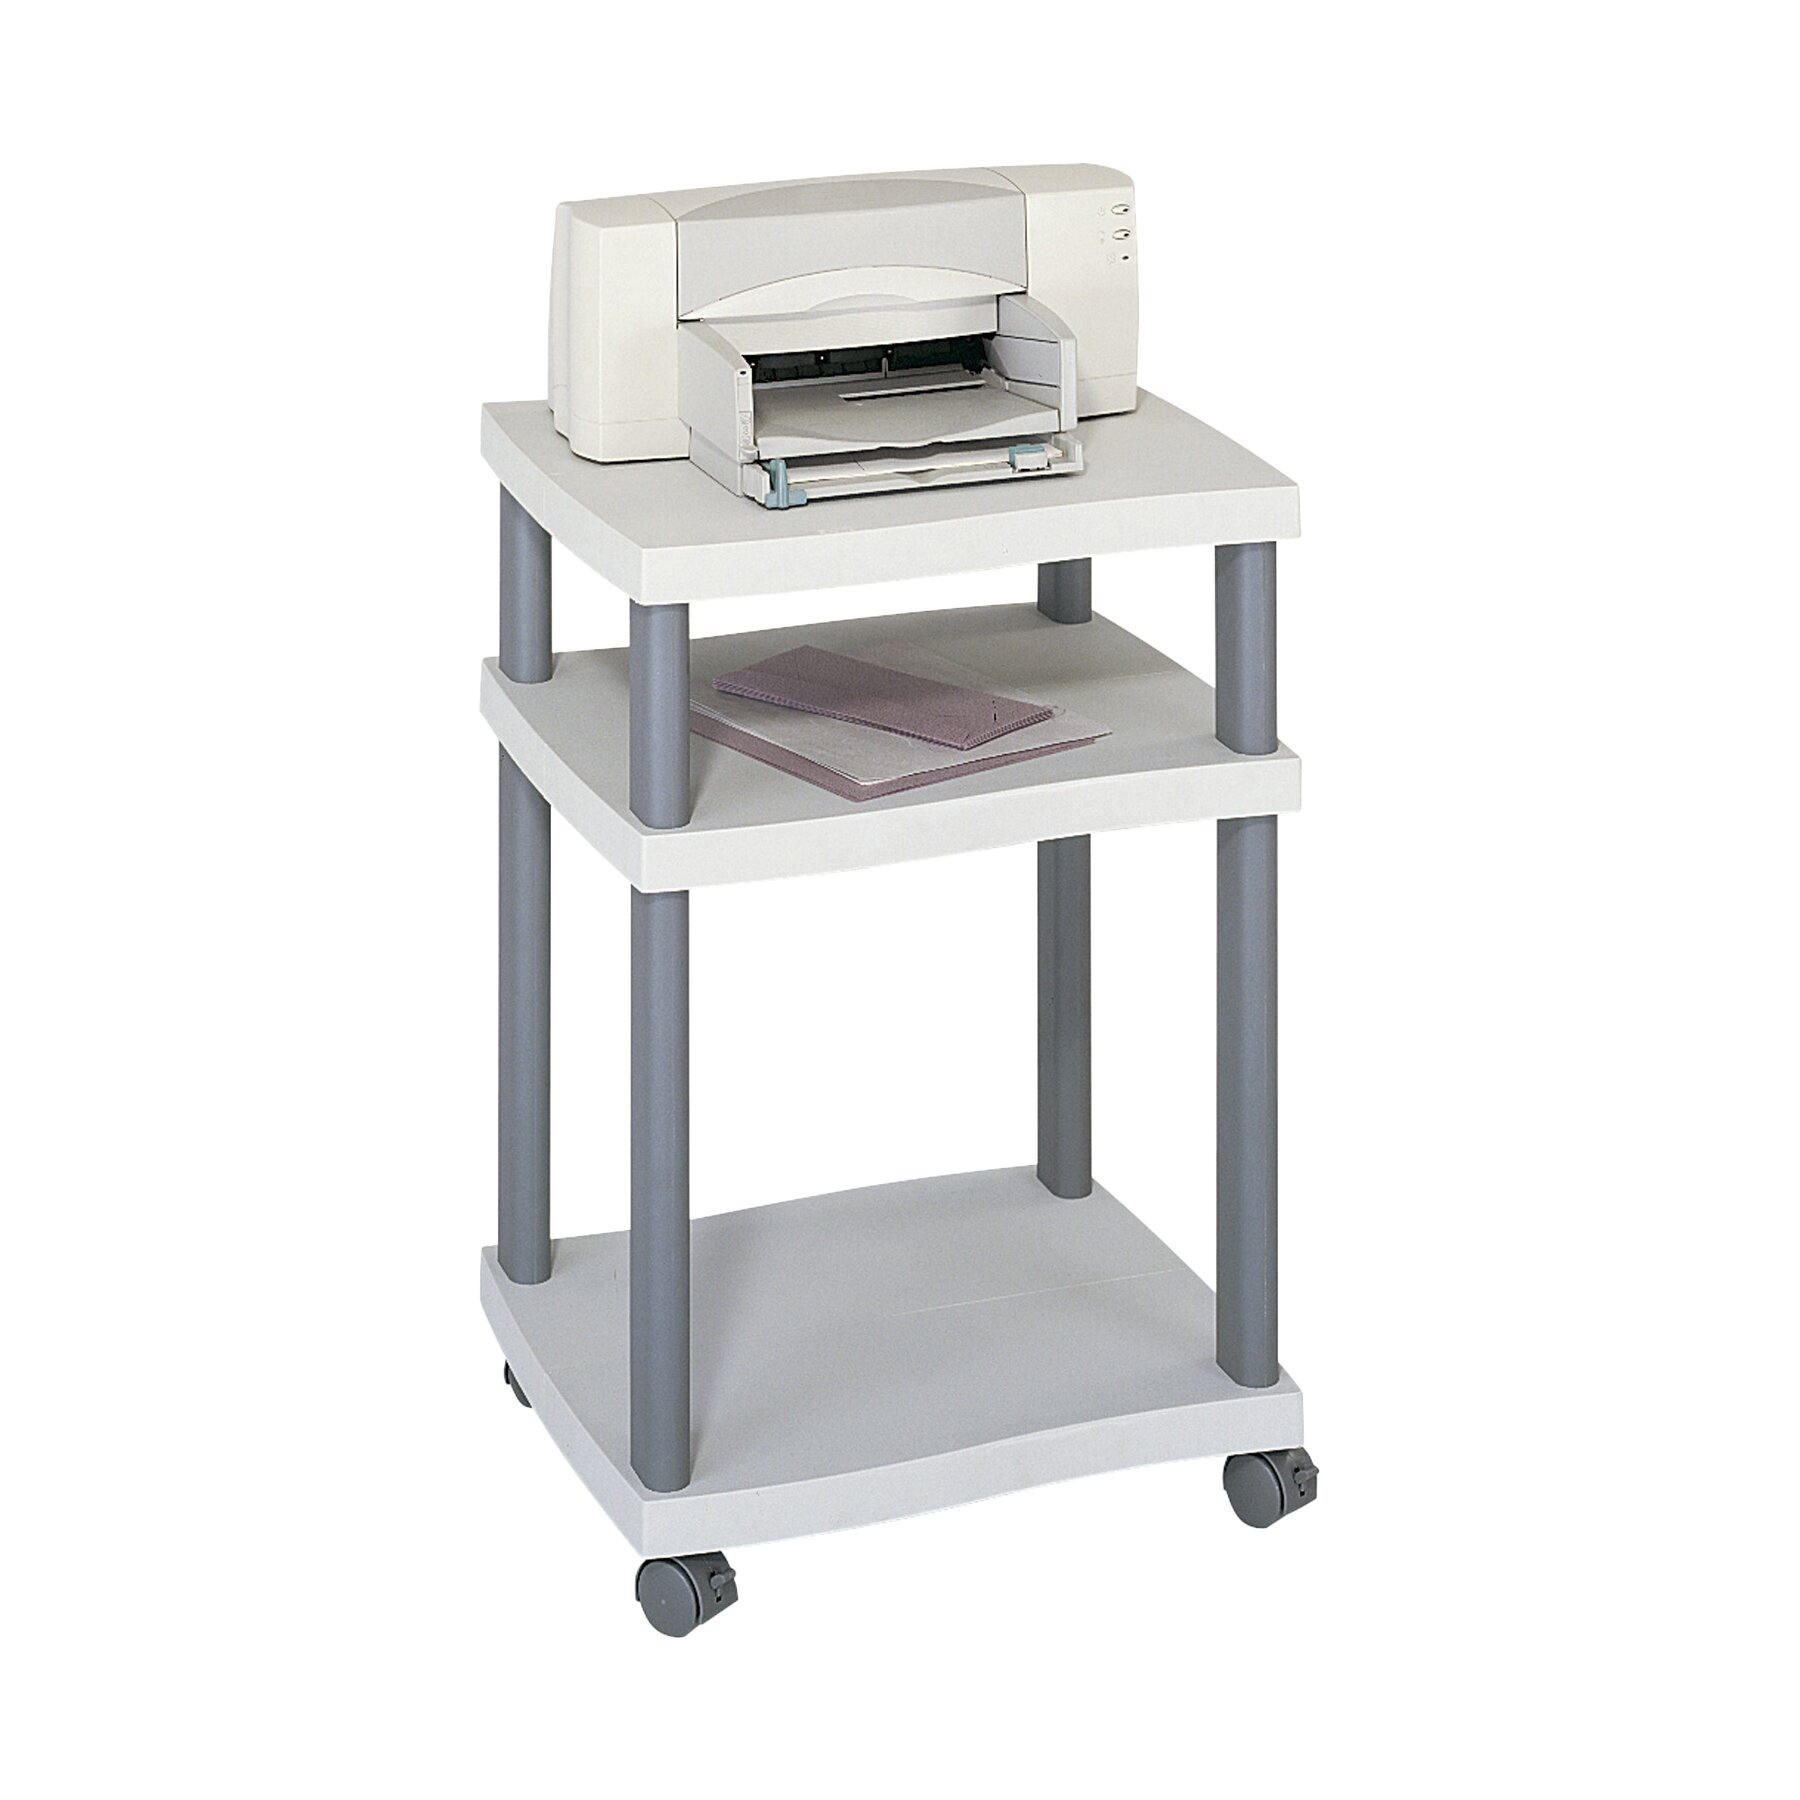 Safco Wave Mobile Printer Stand With 2 Shelves Amp Reviews